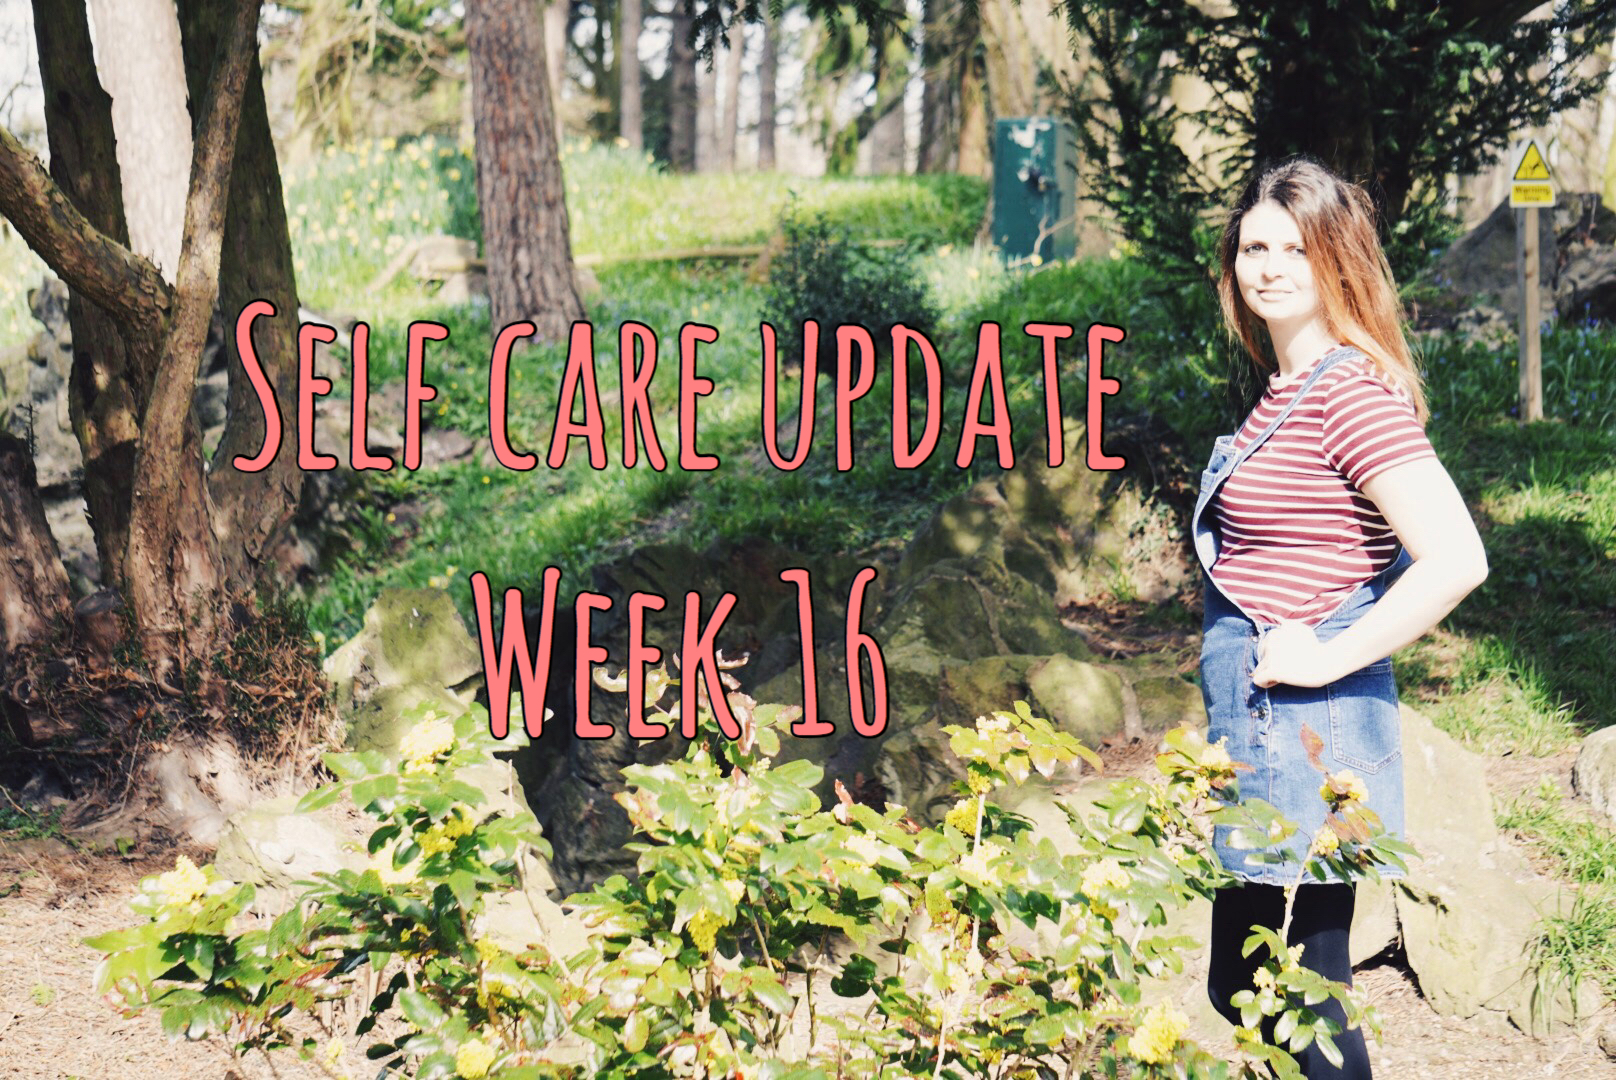 Self Care Update Week 16 graphic